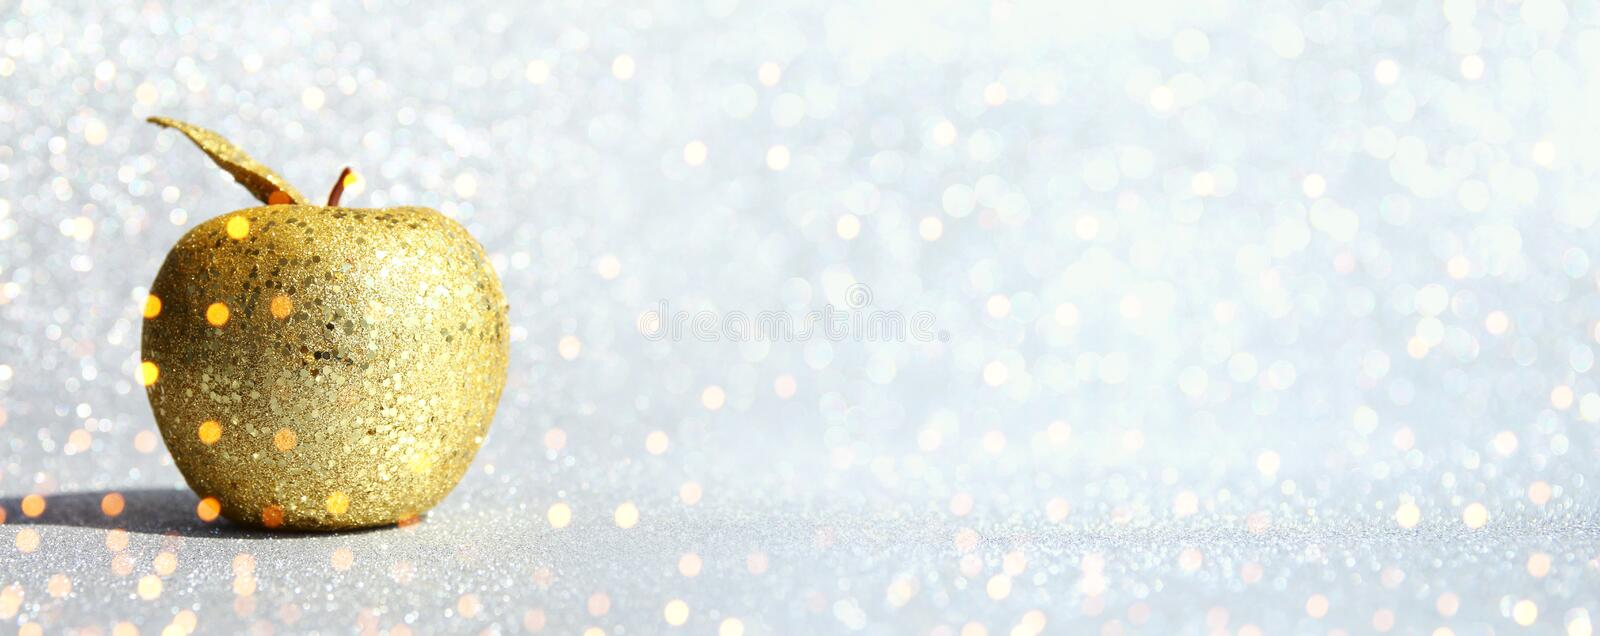 Rosh hashanah jewish New Year holiday concept. Traditional symbol, decorative glitter gold apple. banner.  stock photography